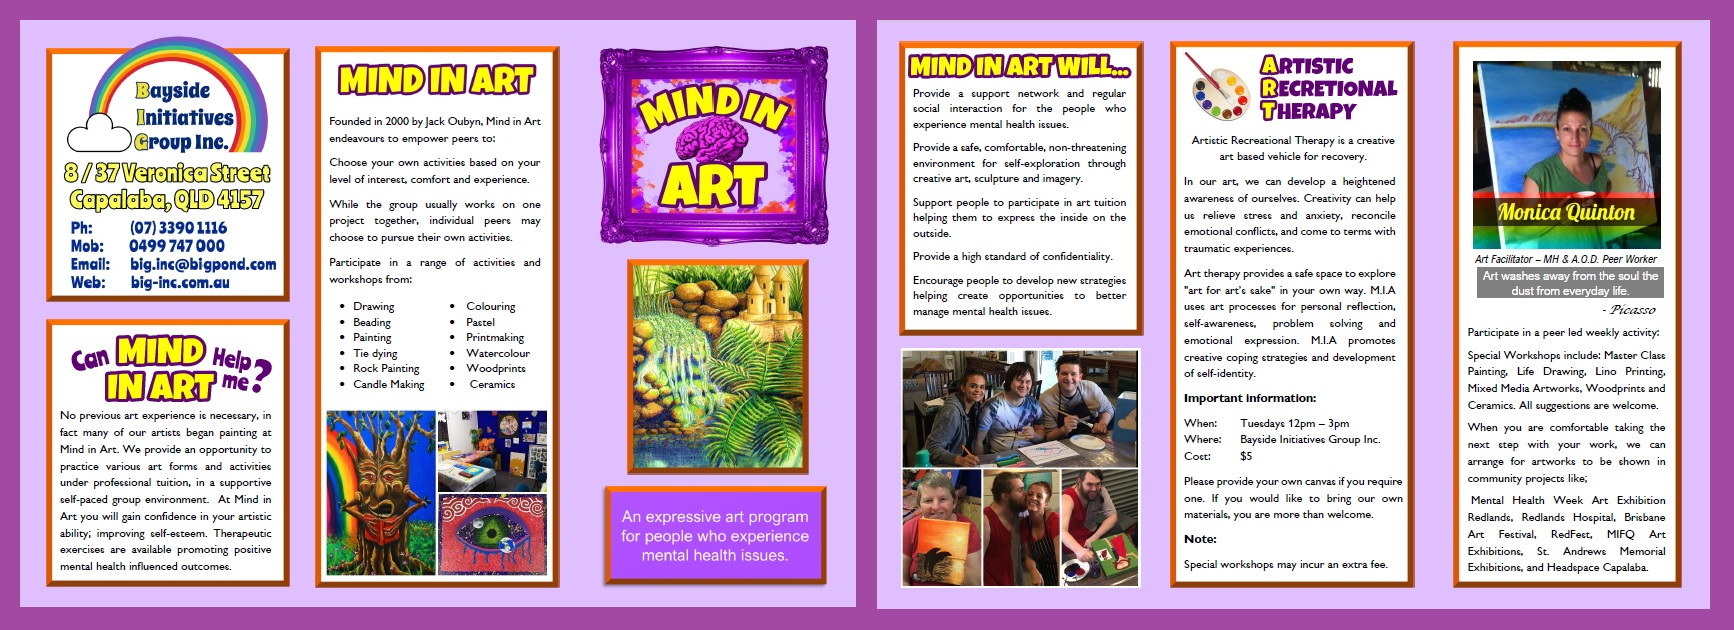 Mind in Art Brochure - MIND in ART is a peer support based expressive art program for mental health consumers in the Redlands and Bayside areas.